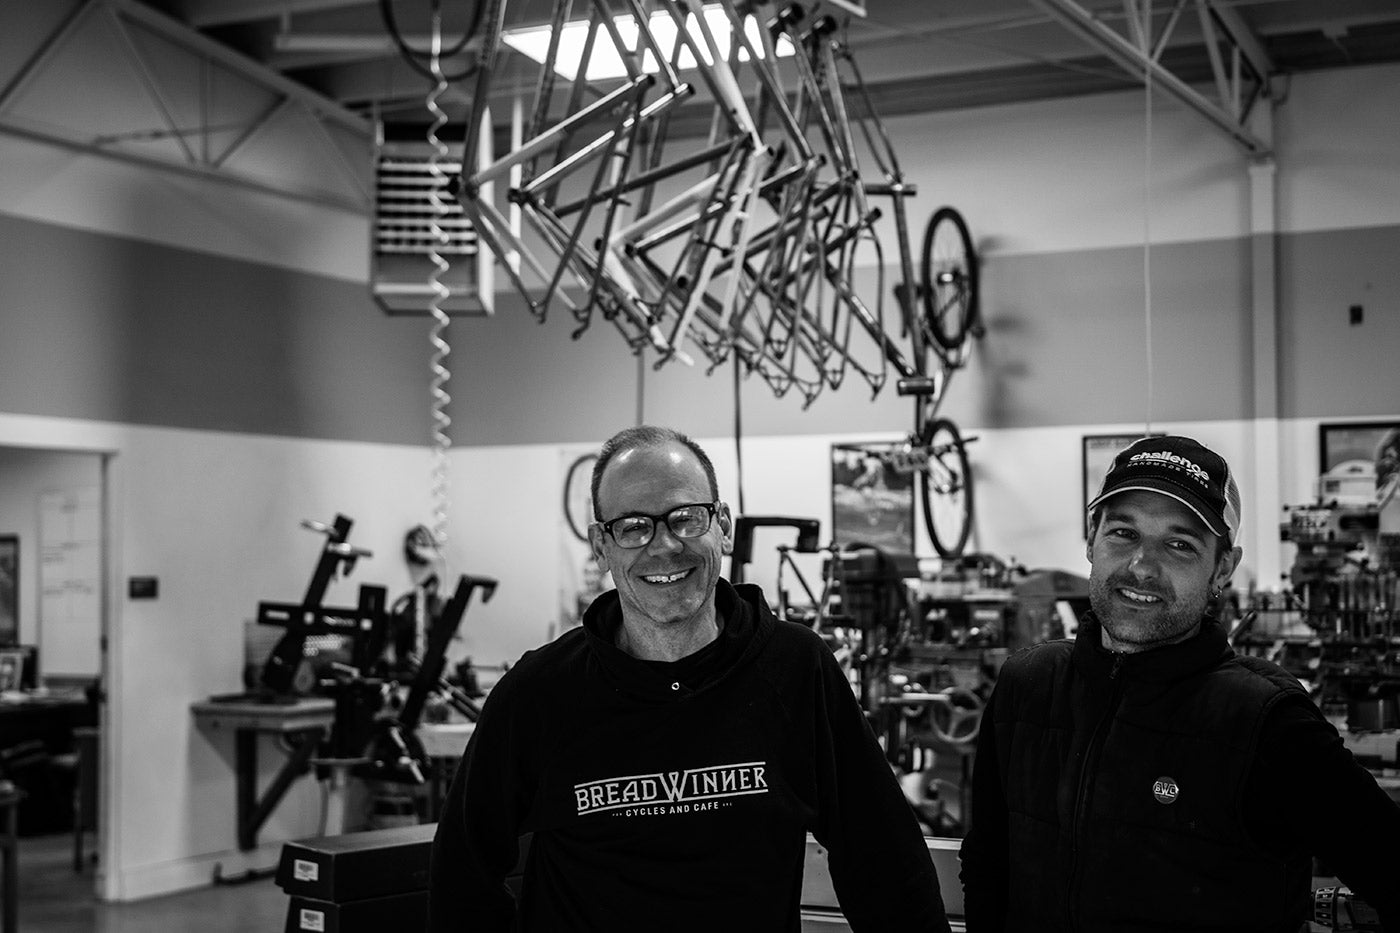 Tony Pereira and Ira Ryan of breadwinner Cycles